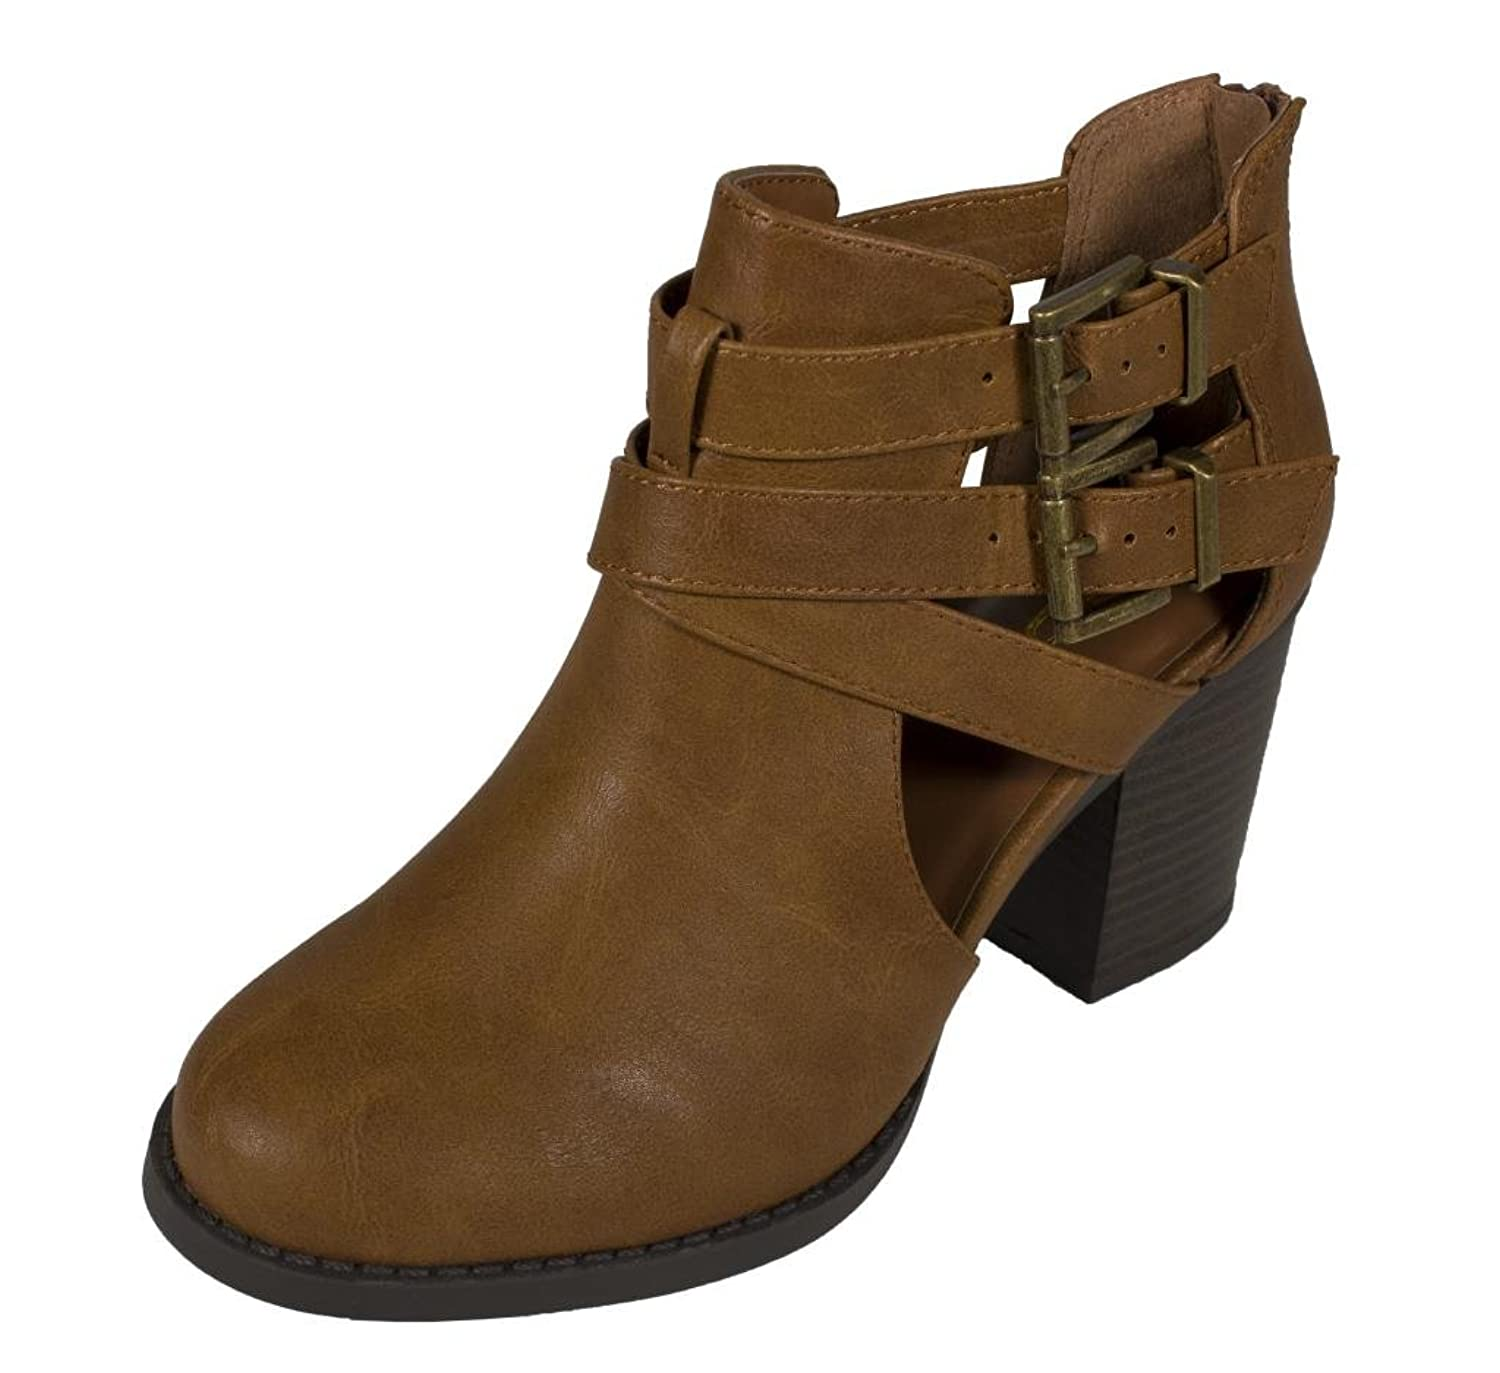 Soda Women's Cutout Sides Buckles Straps Ankle Boots | Ankle & Bootie